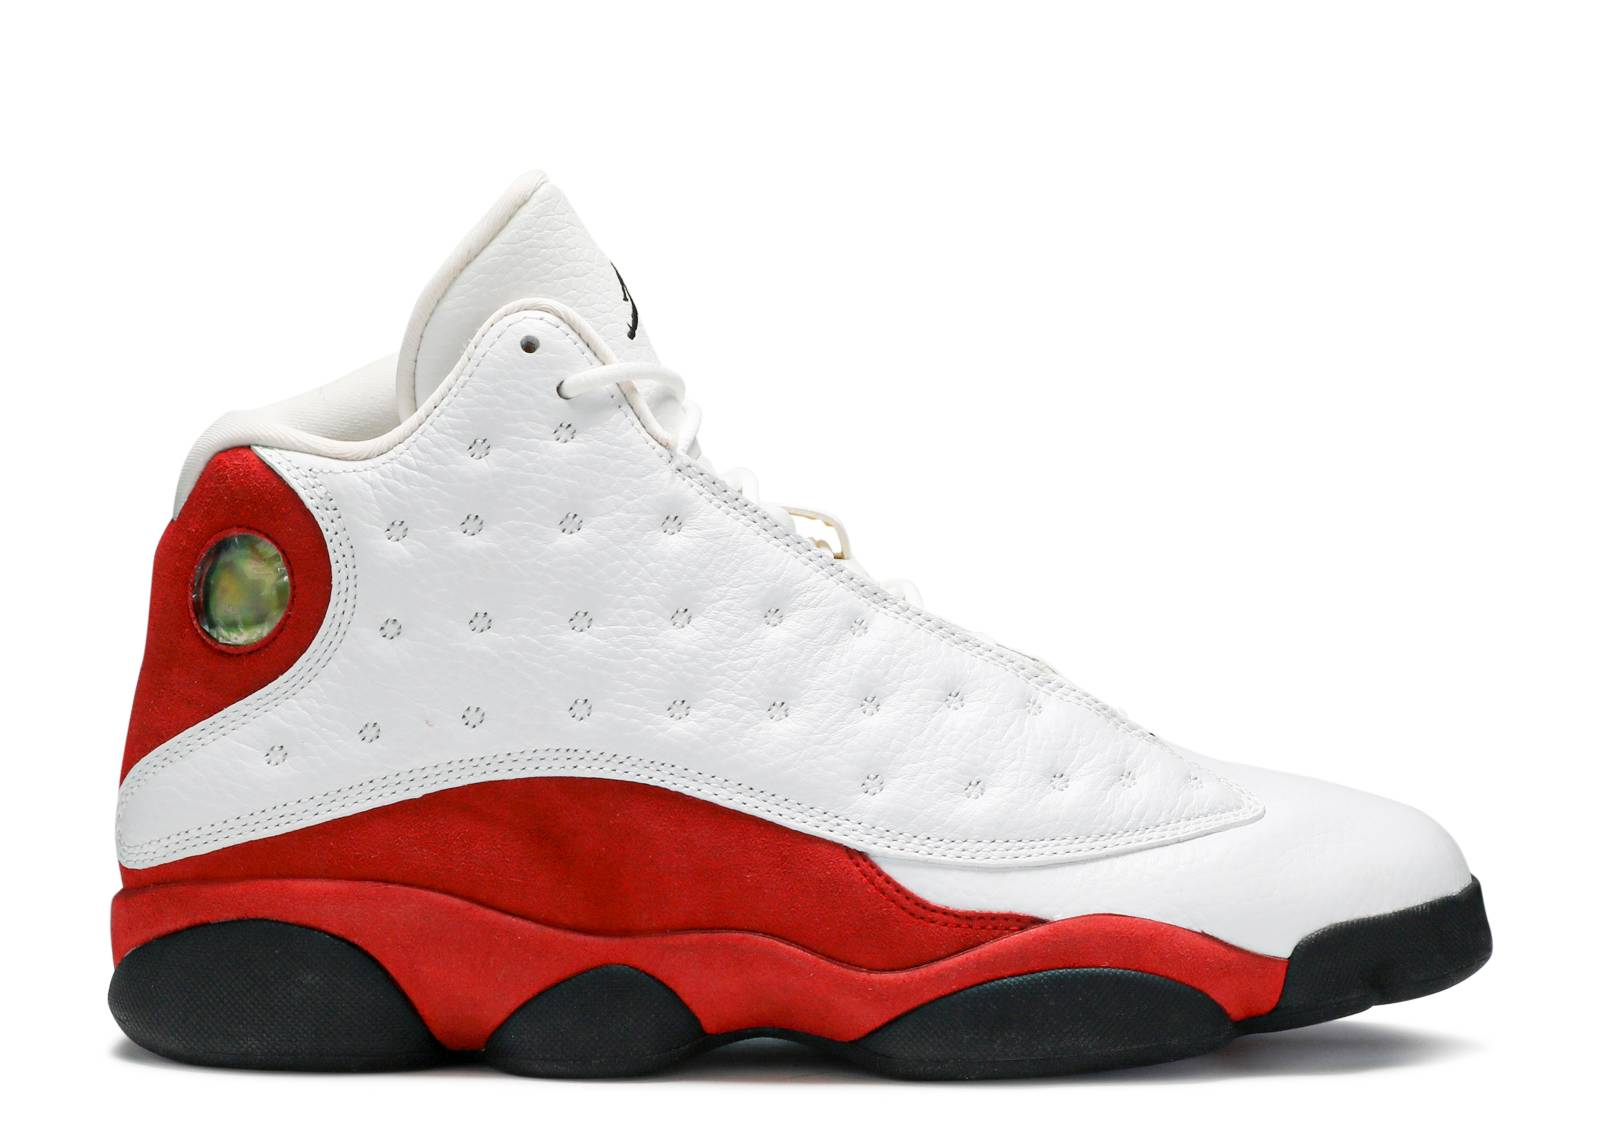 official photos f4bea 50945 air jordan 13 retro